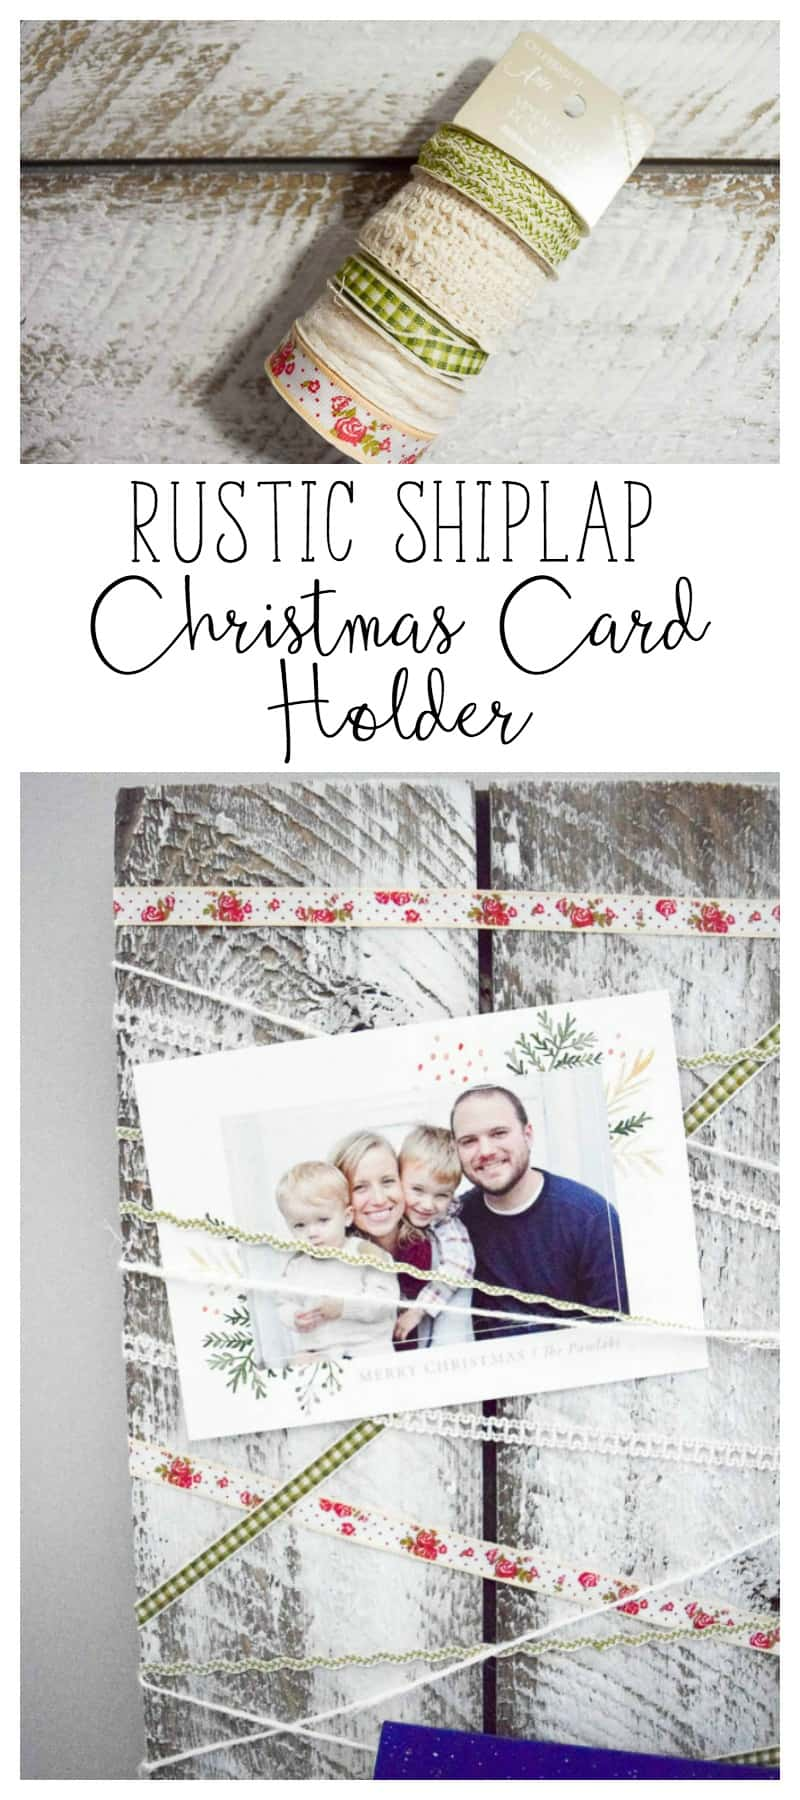 farmhouse style | farmhouse deocr | farmhouse christmas | rustic christmas card holder | farmhouse